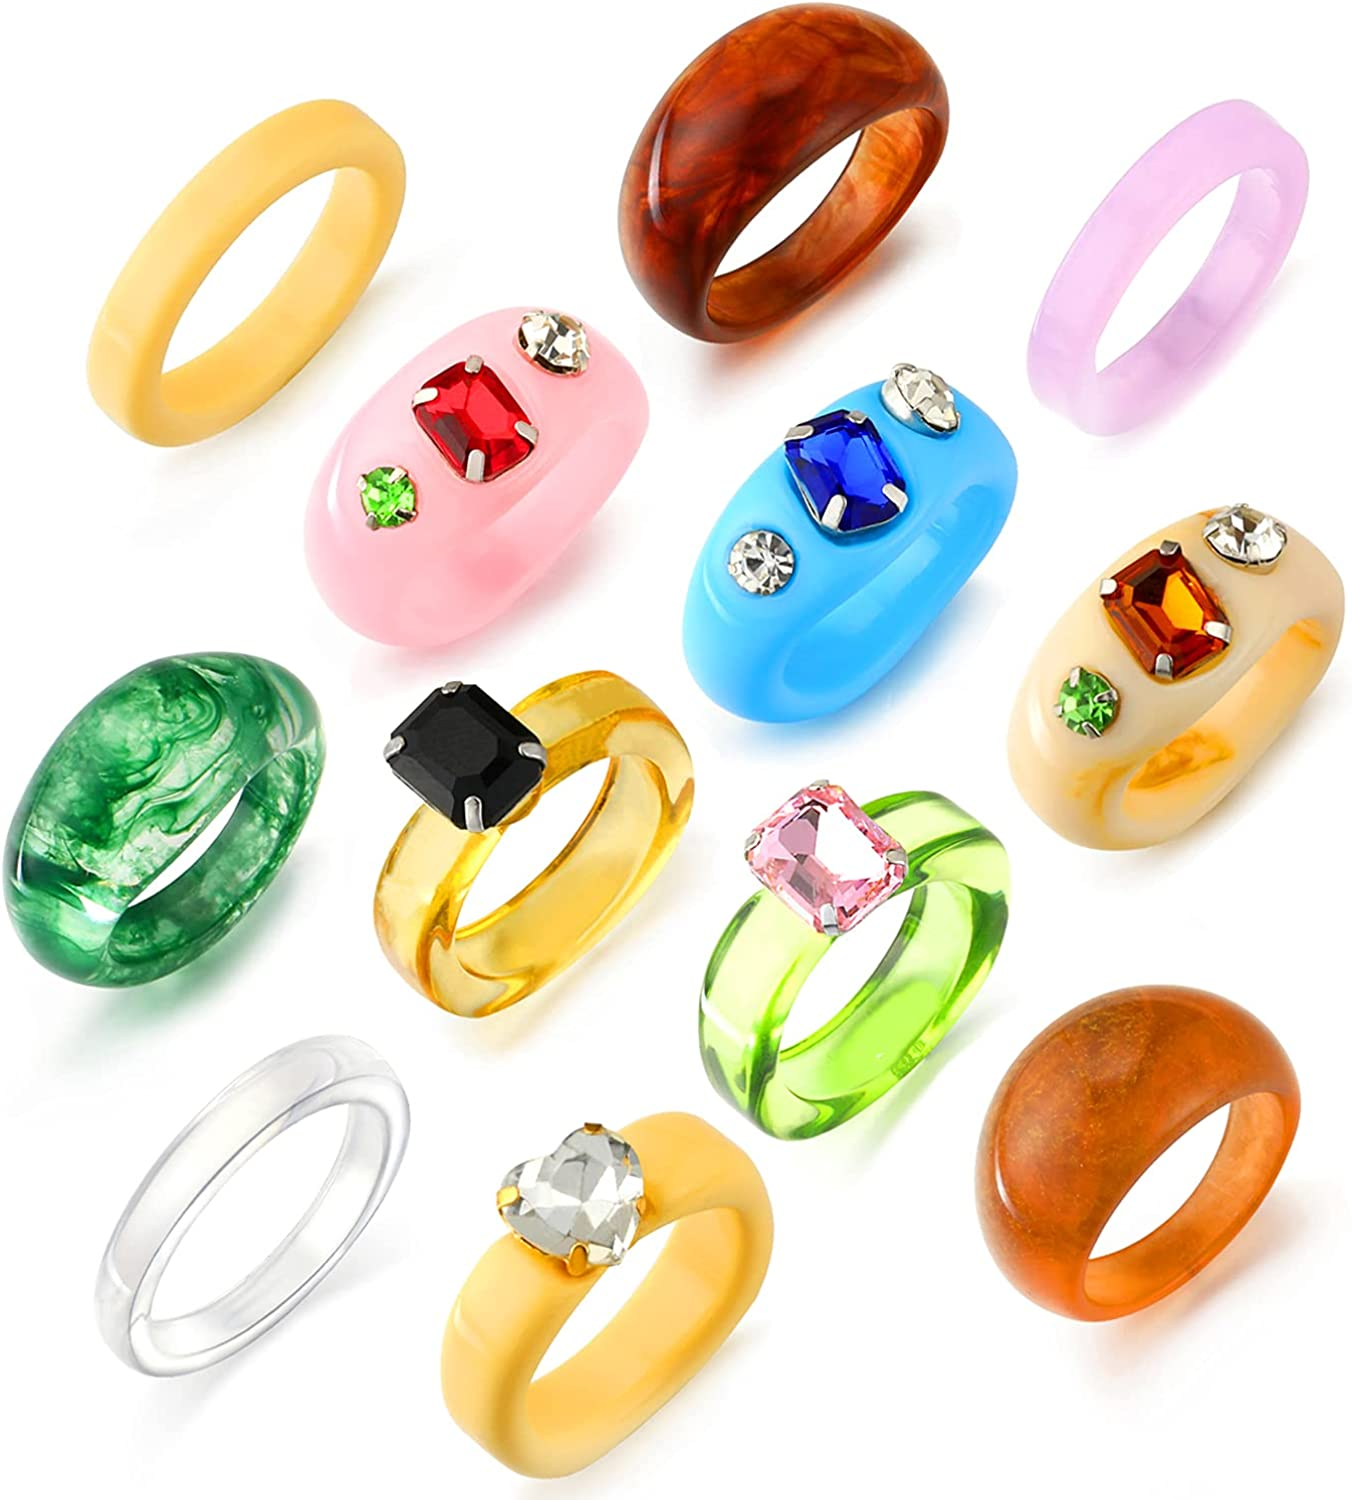 KOHOTA 12PCS Retro Resin Acrylic Rings Set for Women Vintage Plastic Resin Inlaid Square Crystal Ring Colorful Statement Chunky Rings